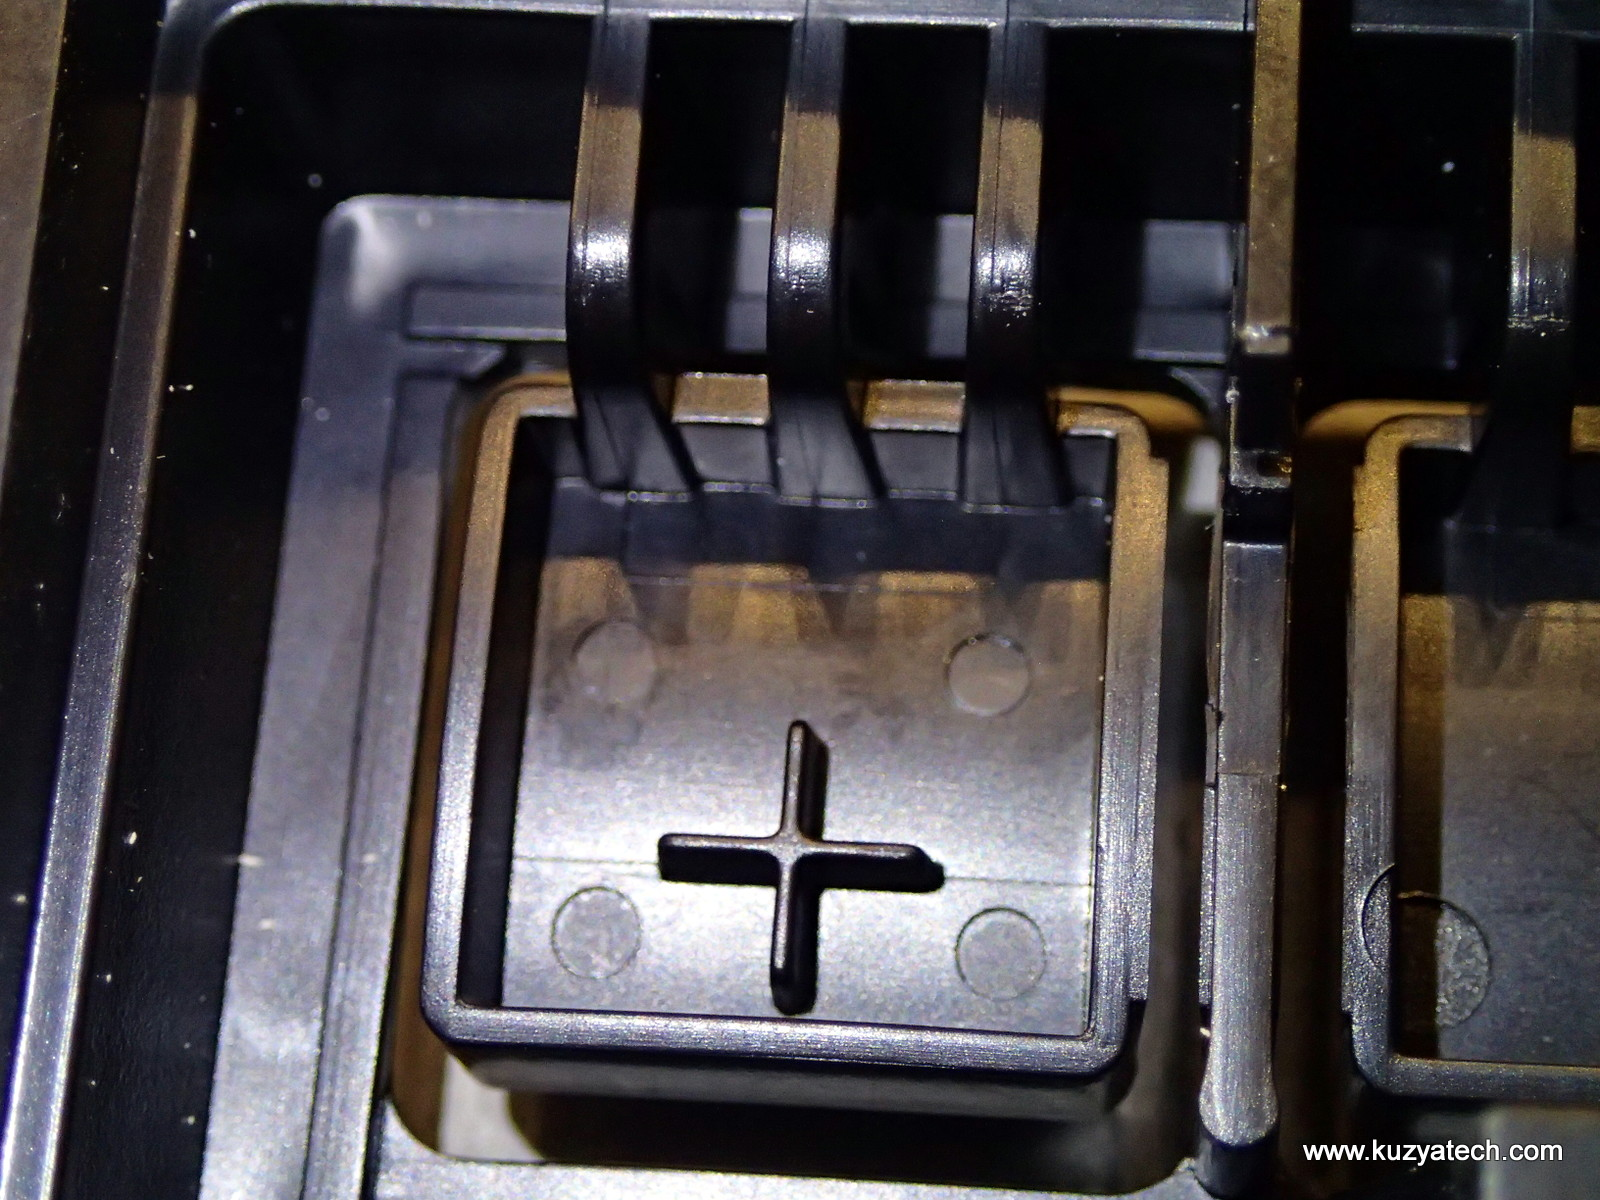 Buttons as part of the case